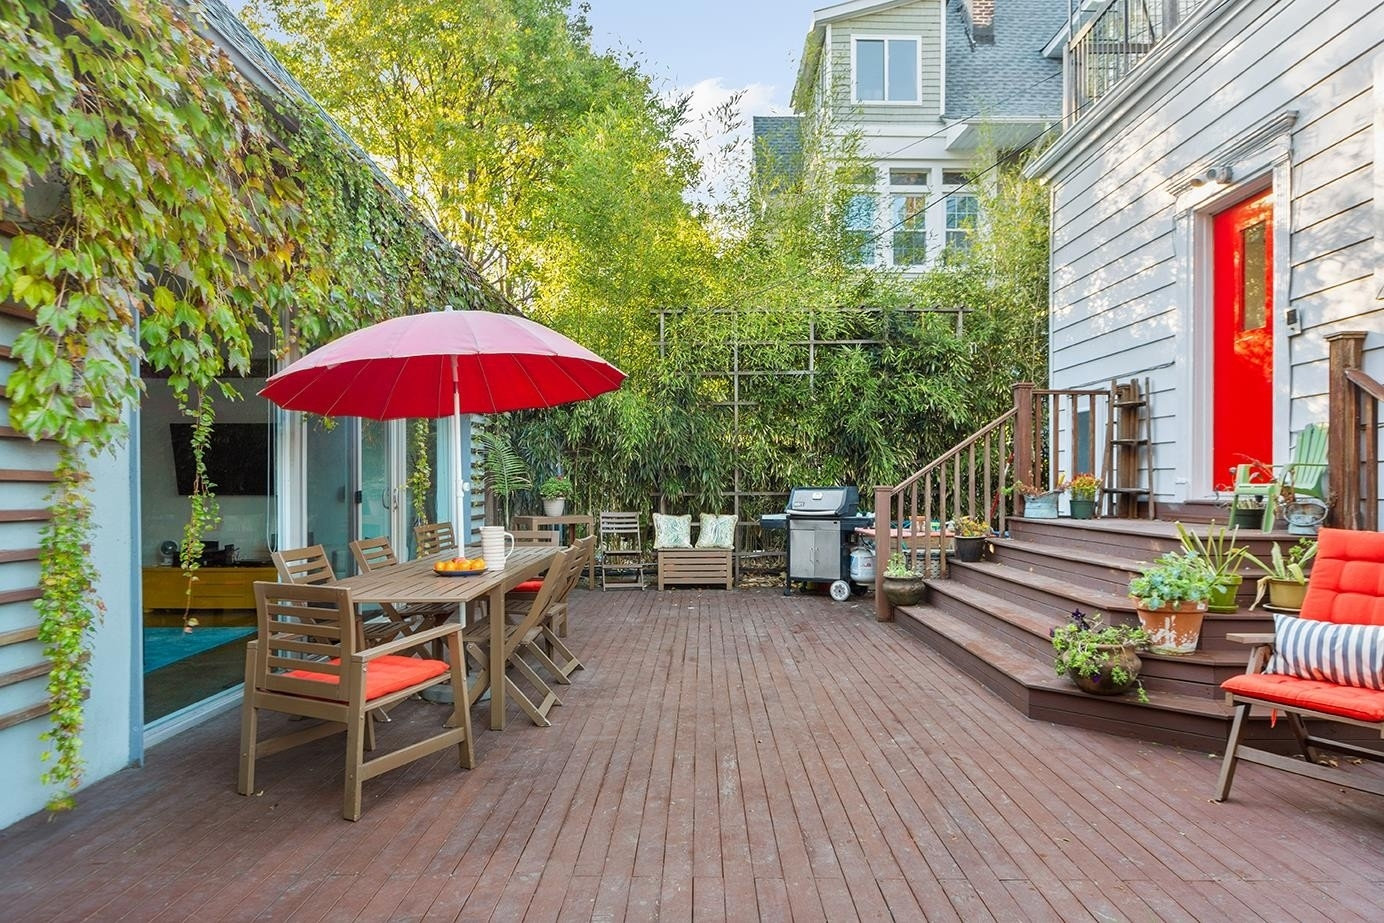 Single Family Townhouse for Sale at Ditmas Park, Brooklyn, NY 11218